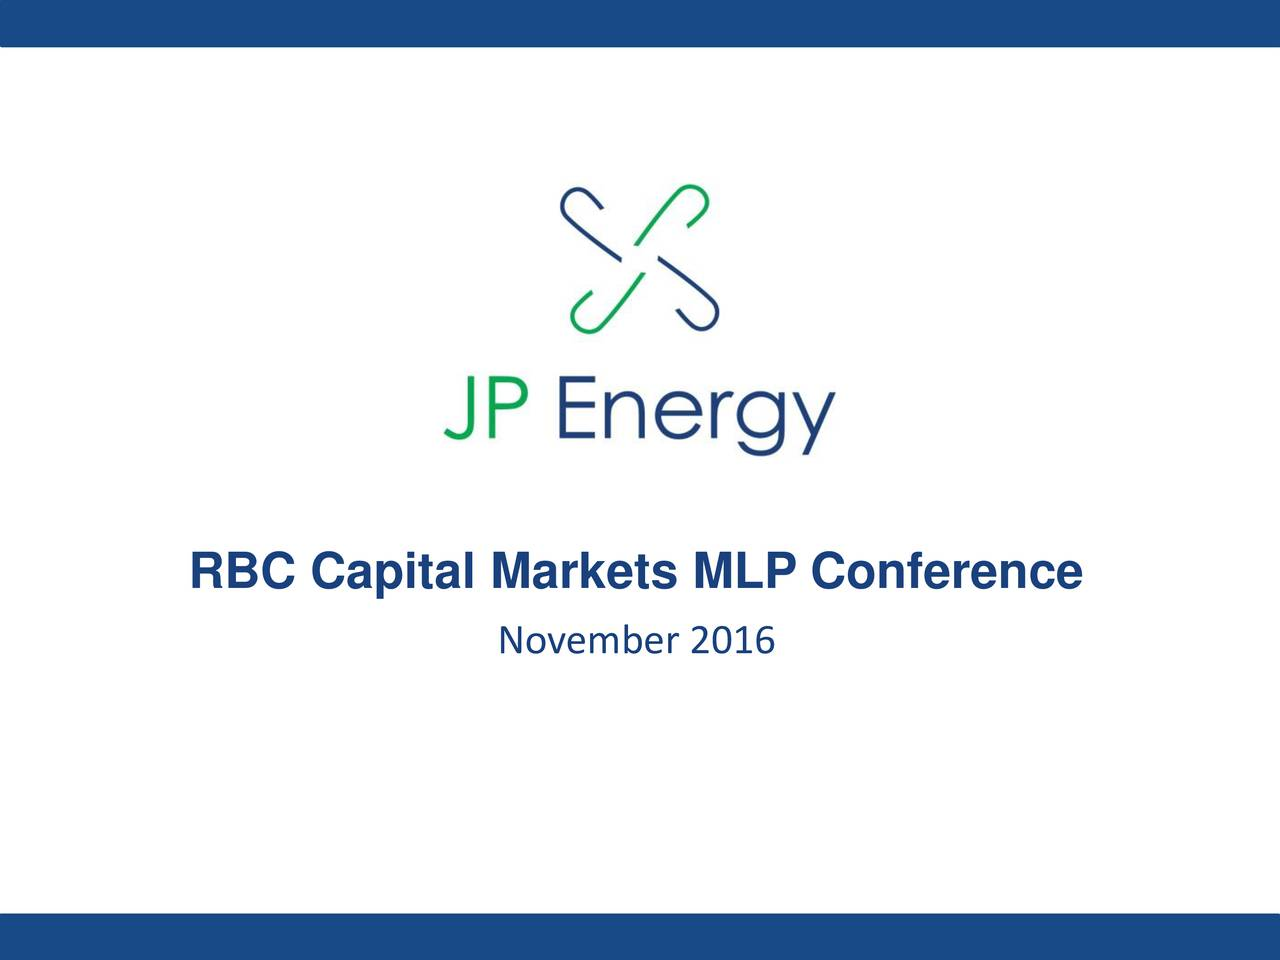 JP Energy Partners (JPEP) presents at RBC Capital Markets ...